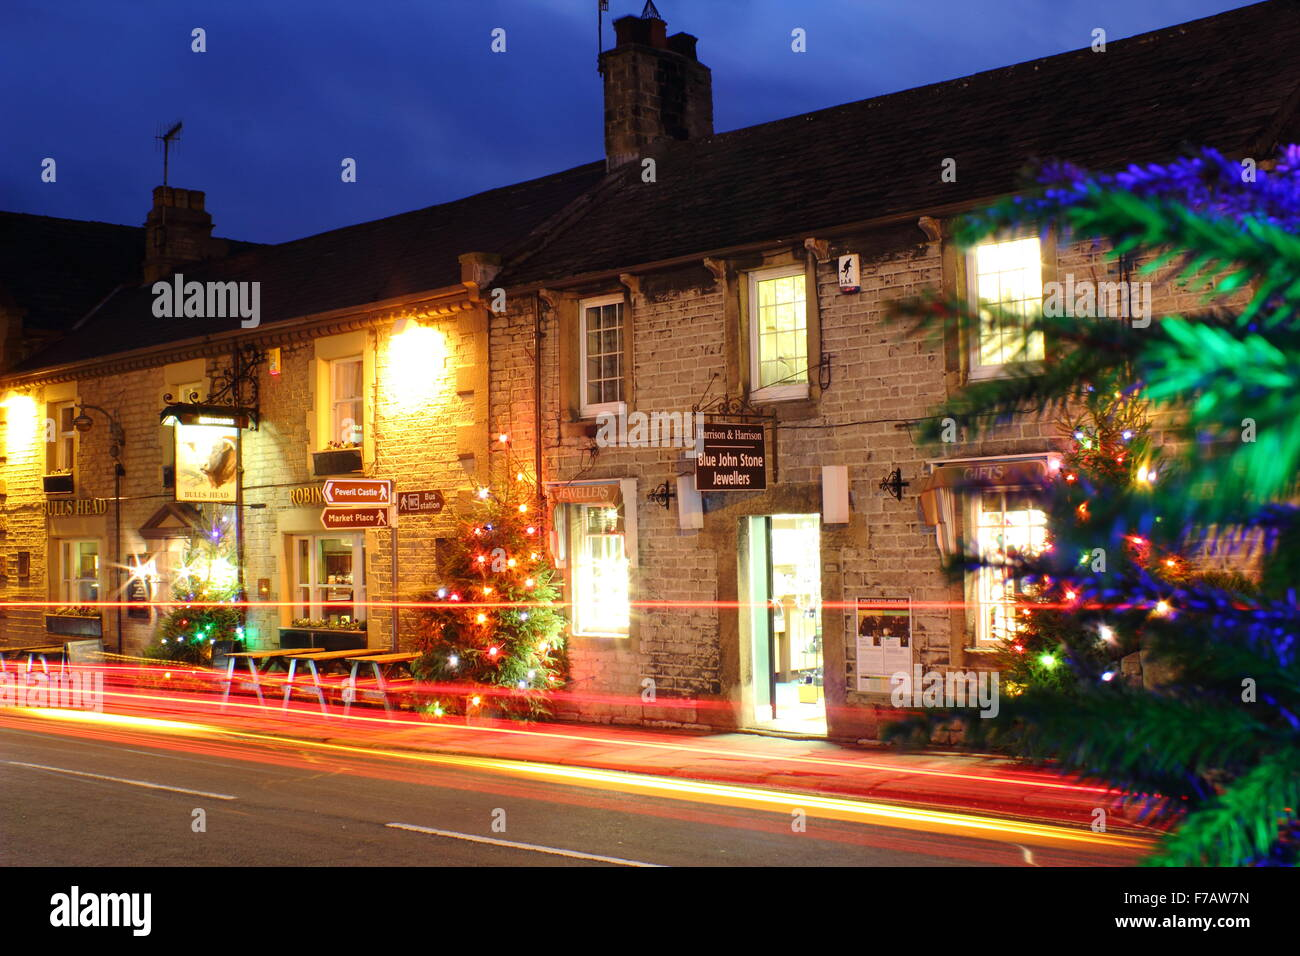 Christmas trees and light trails illuminate the main street in Castleton, a pretty village in Derbyshire's Peak Stock Photo